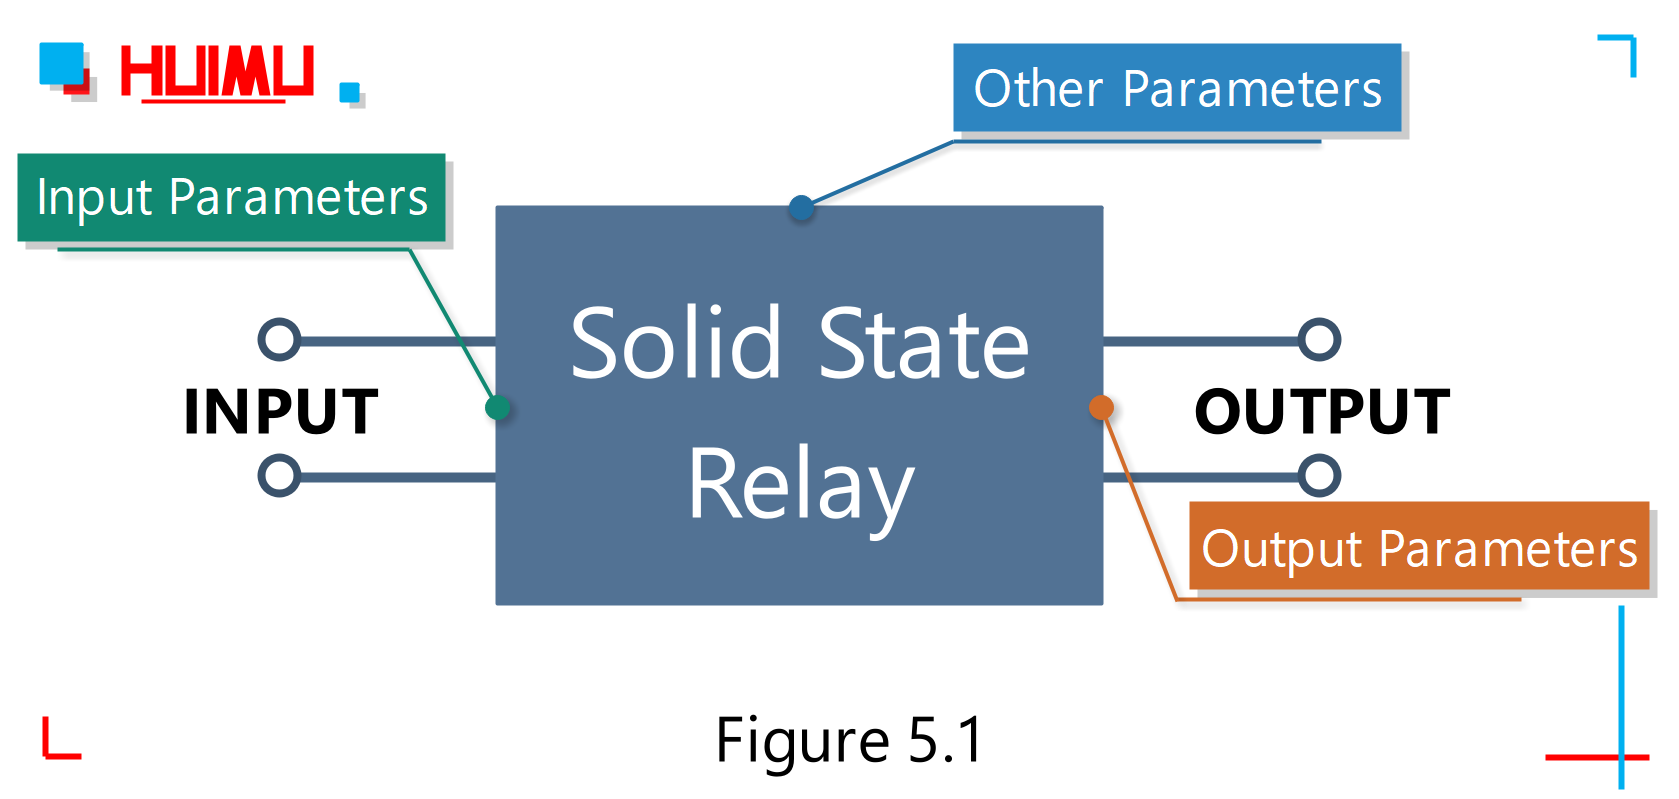 The_basic_parameters_of_solid_state_relays│HUIMULTD